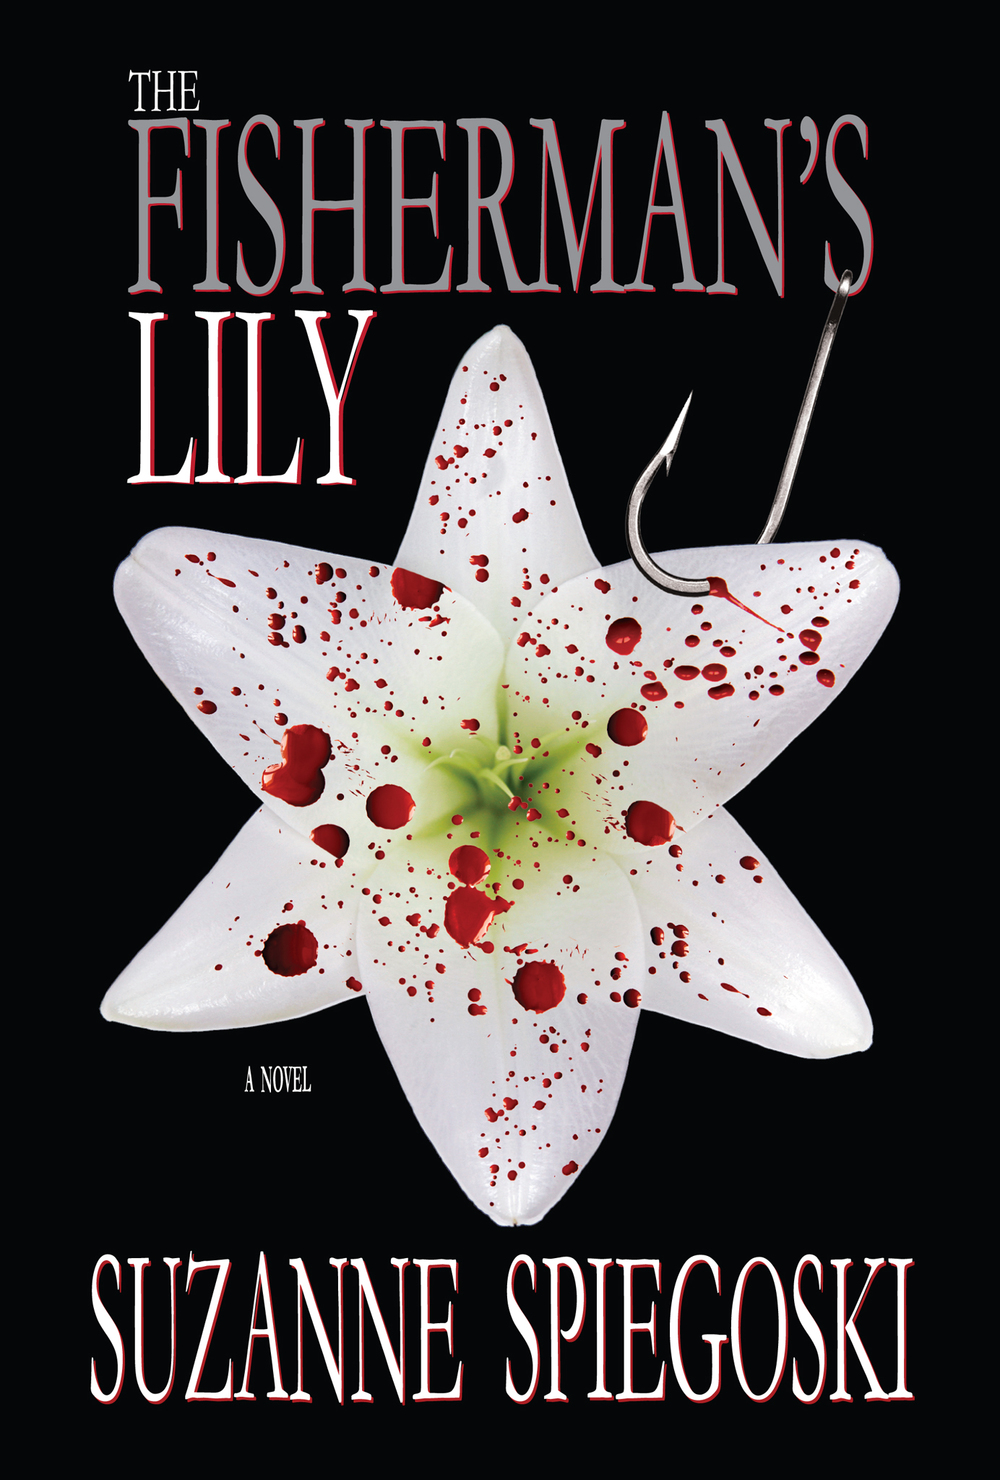 The Fisherman's Lily: A Novel By Suzanne Spiegoski